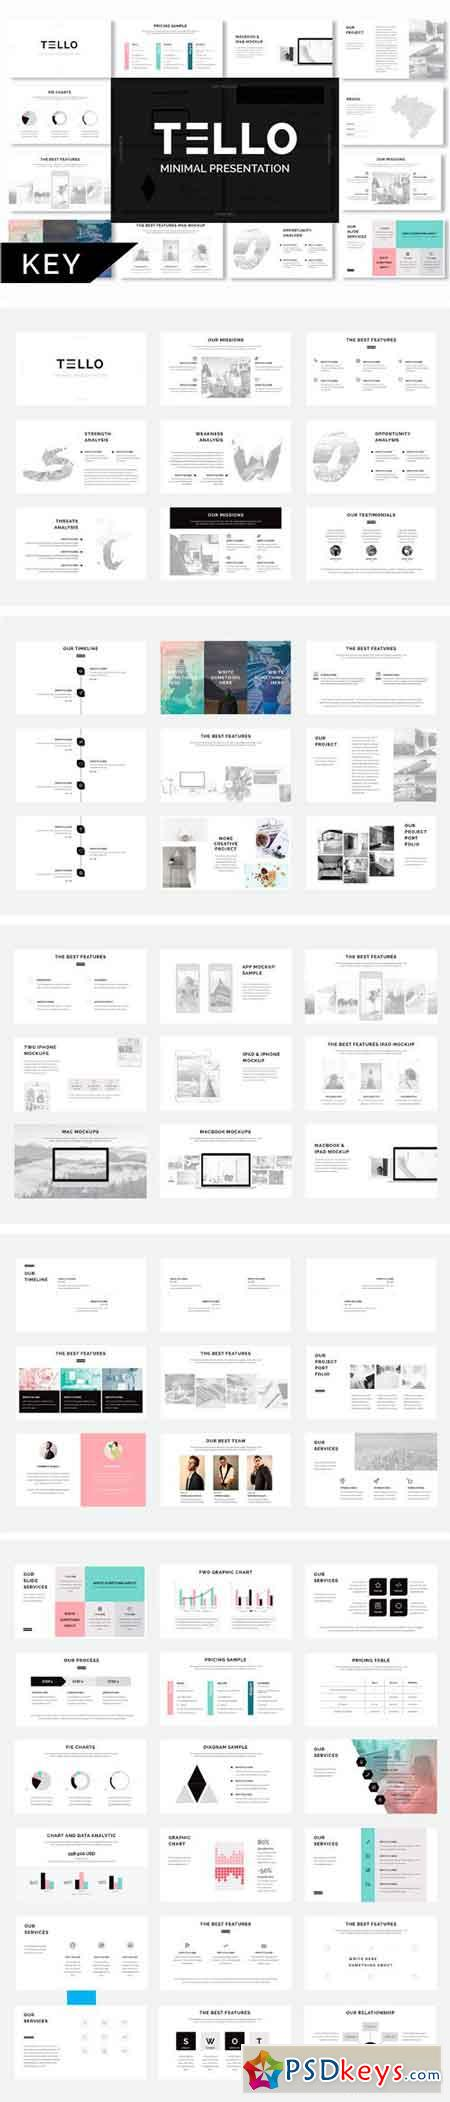 Tello Minimal Keynote Template 1321545